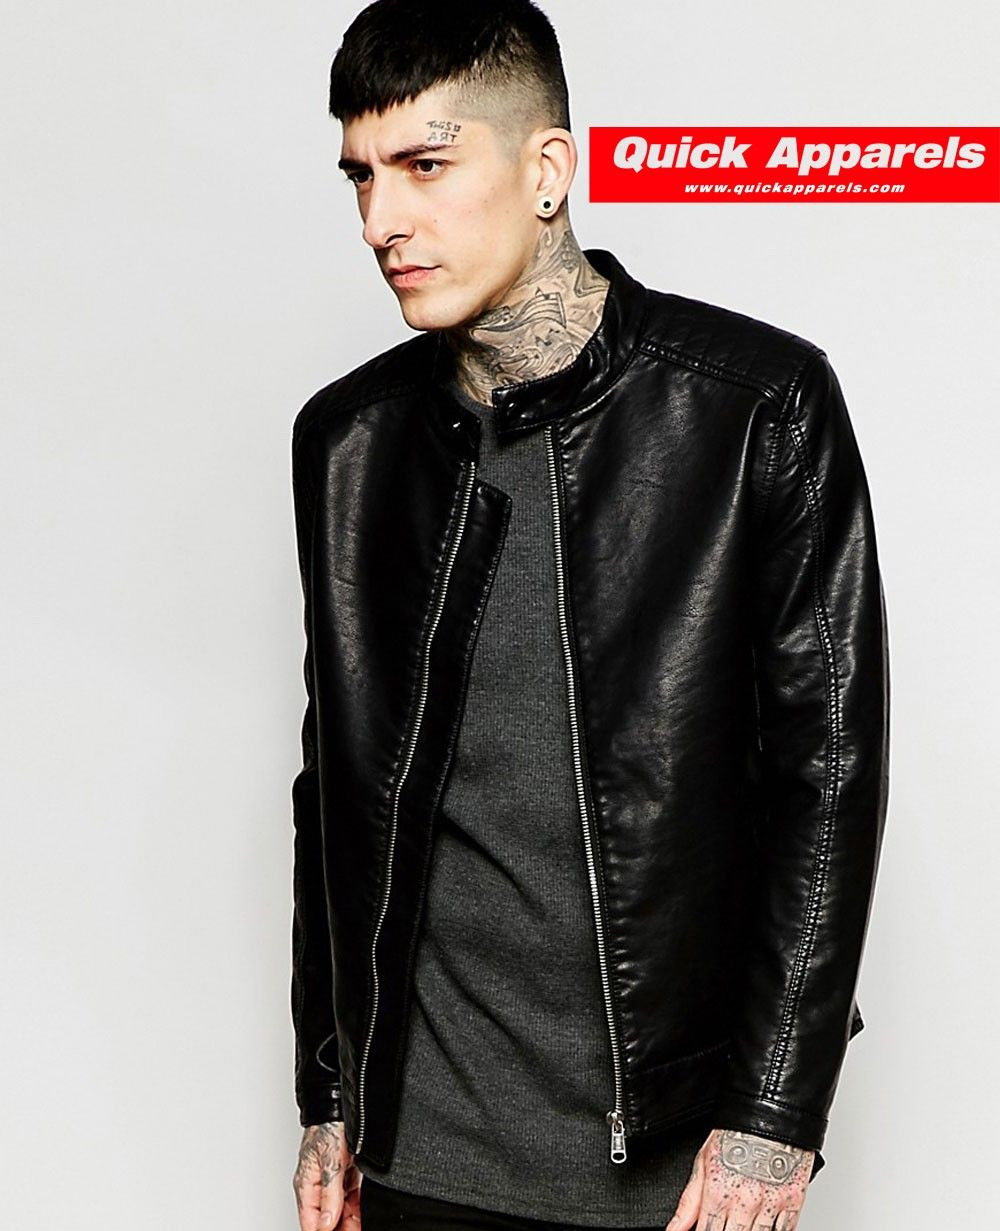 Http Www Quickapparels Com Best Selling Black Faux Leather Jacket Html Black Faux Leather Jacket Best Leather Jackets Cafe Racer Leather Jacket